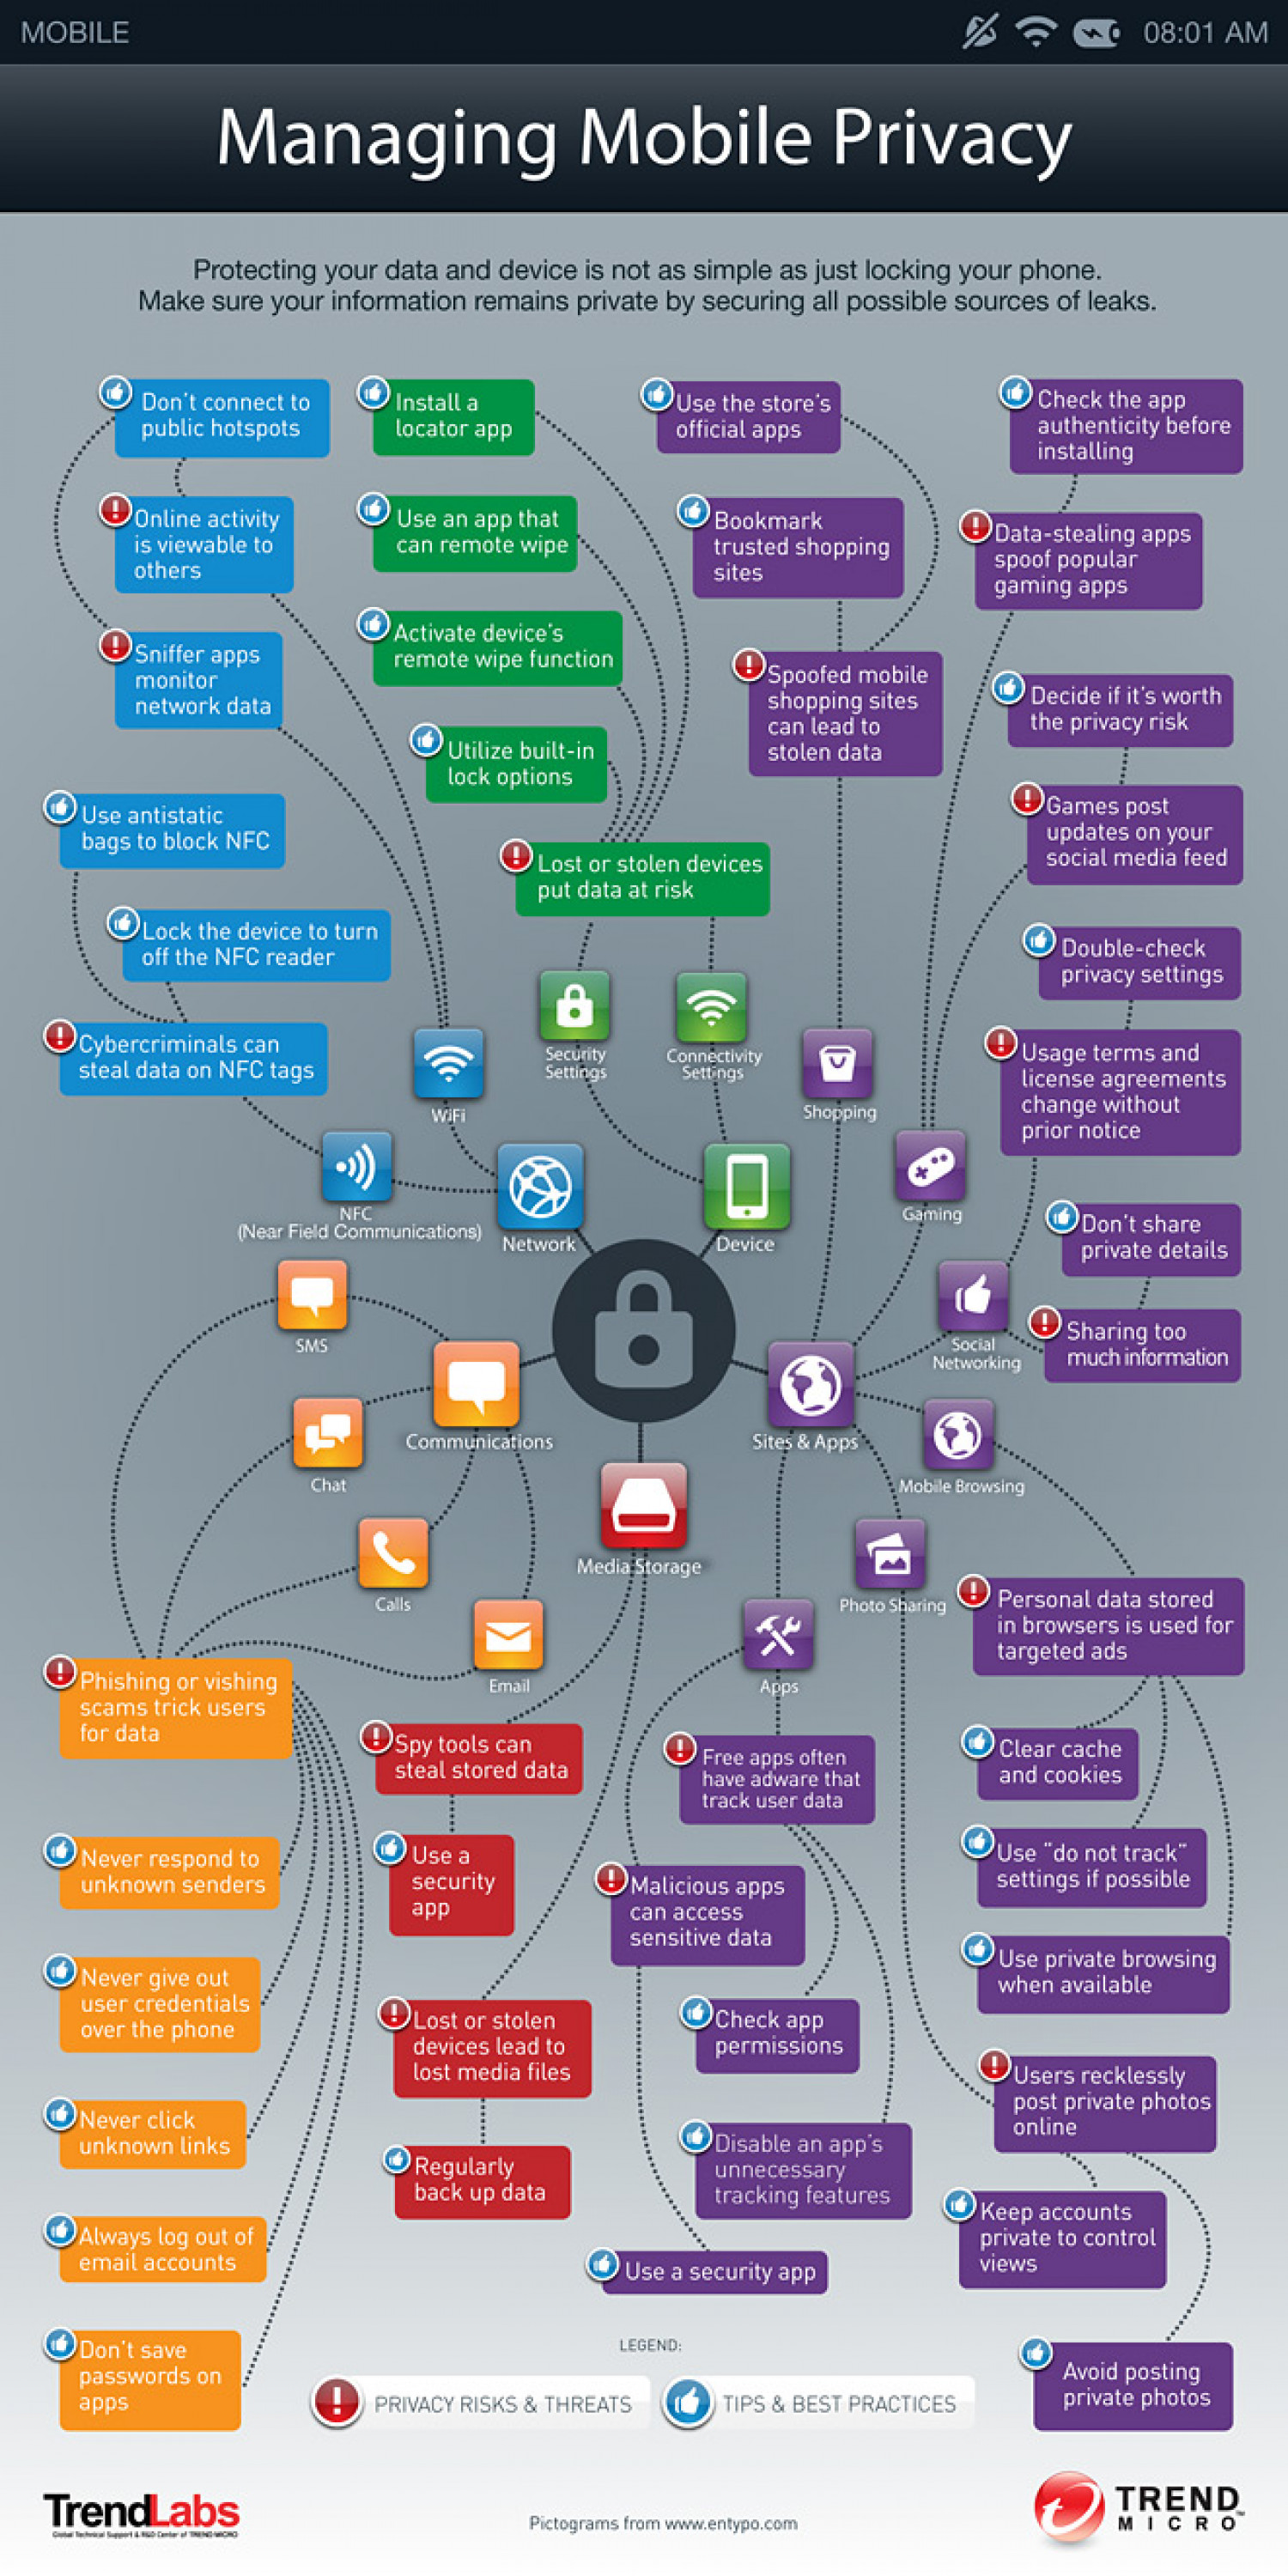 Managing Mobile Privacy Infographic